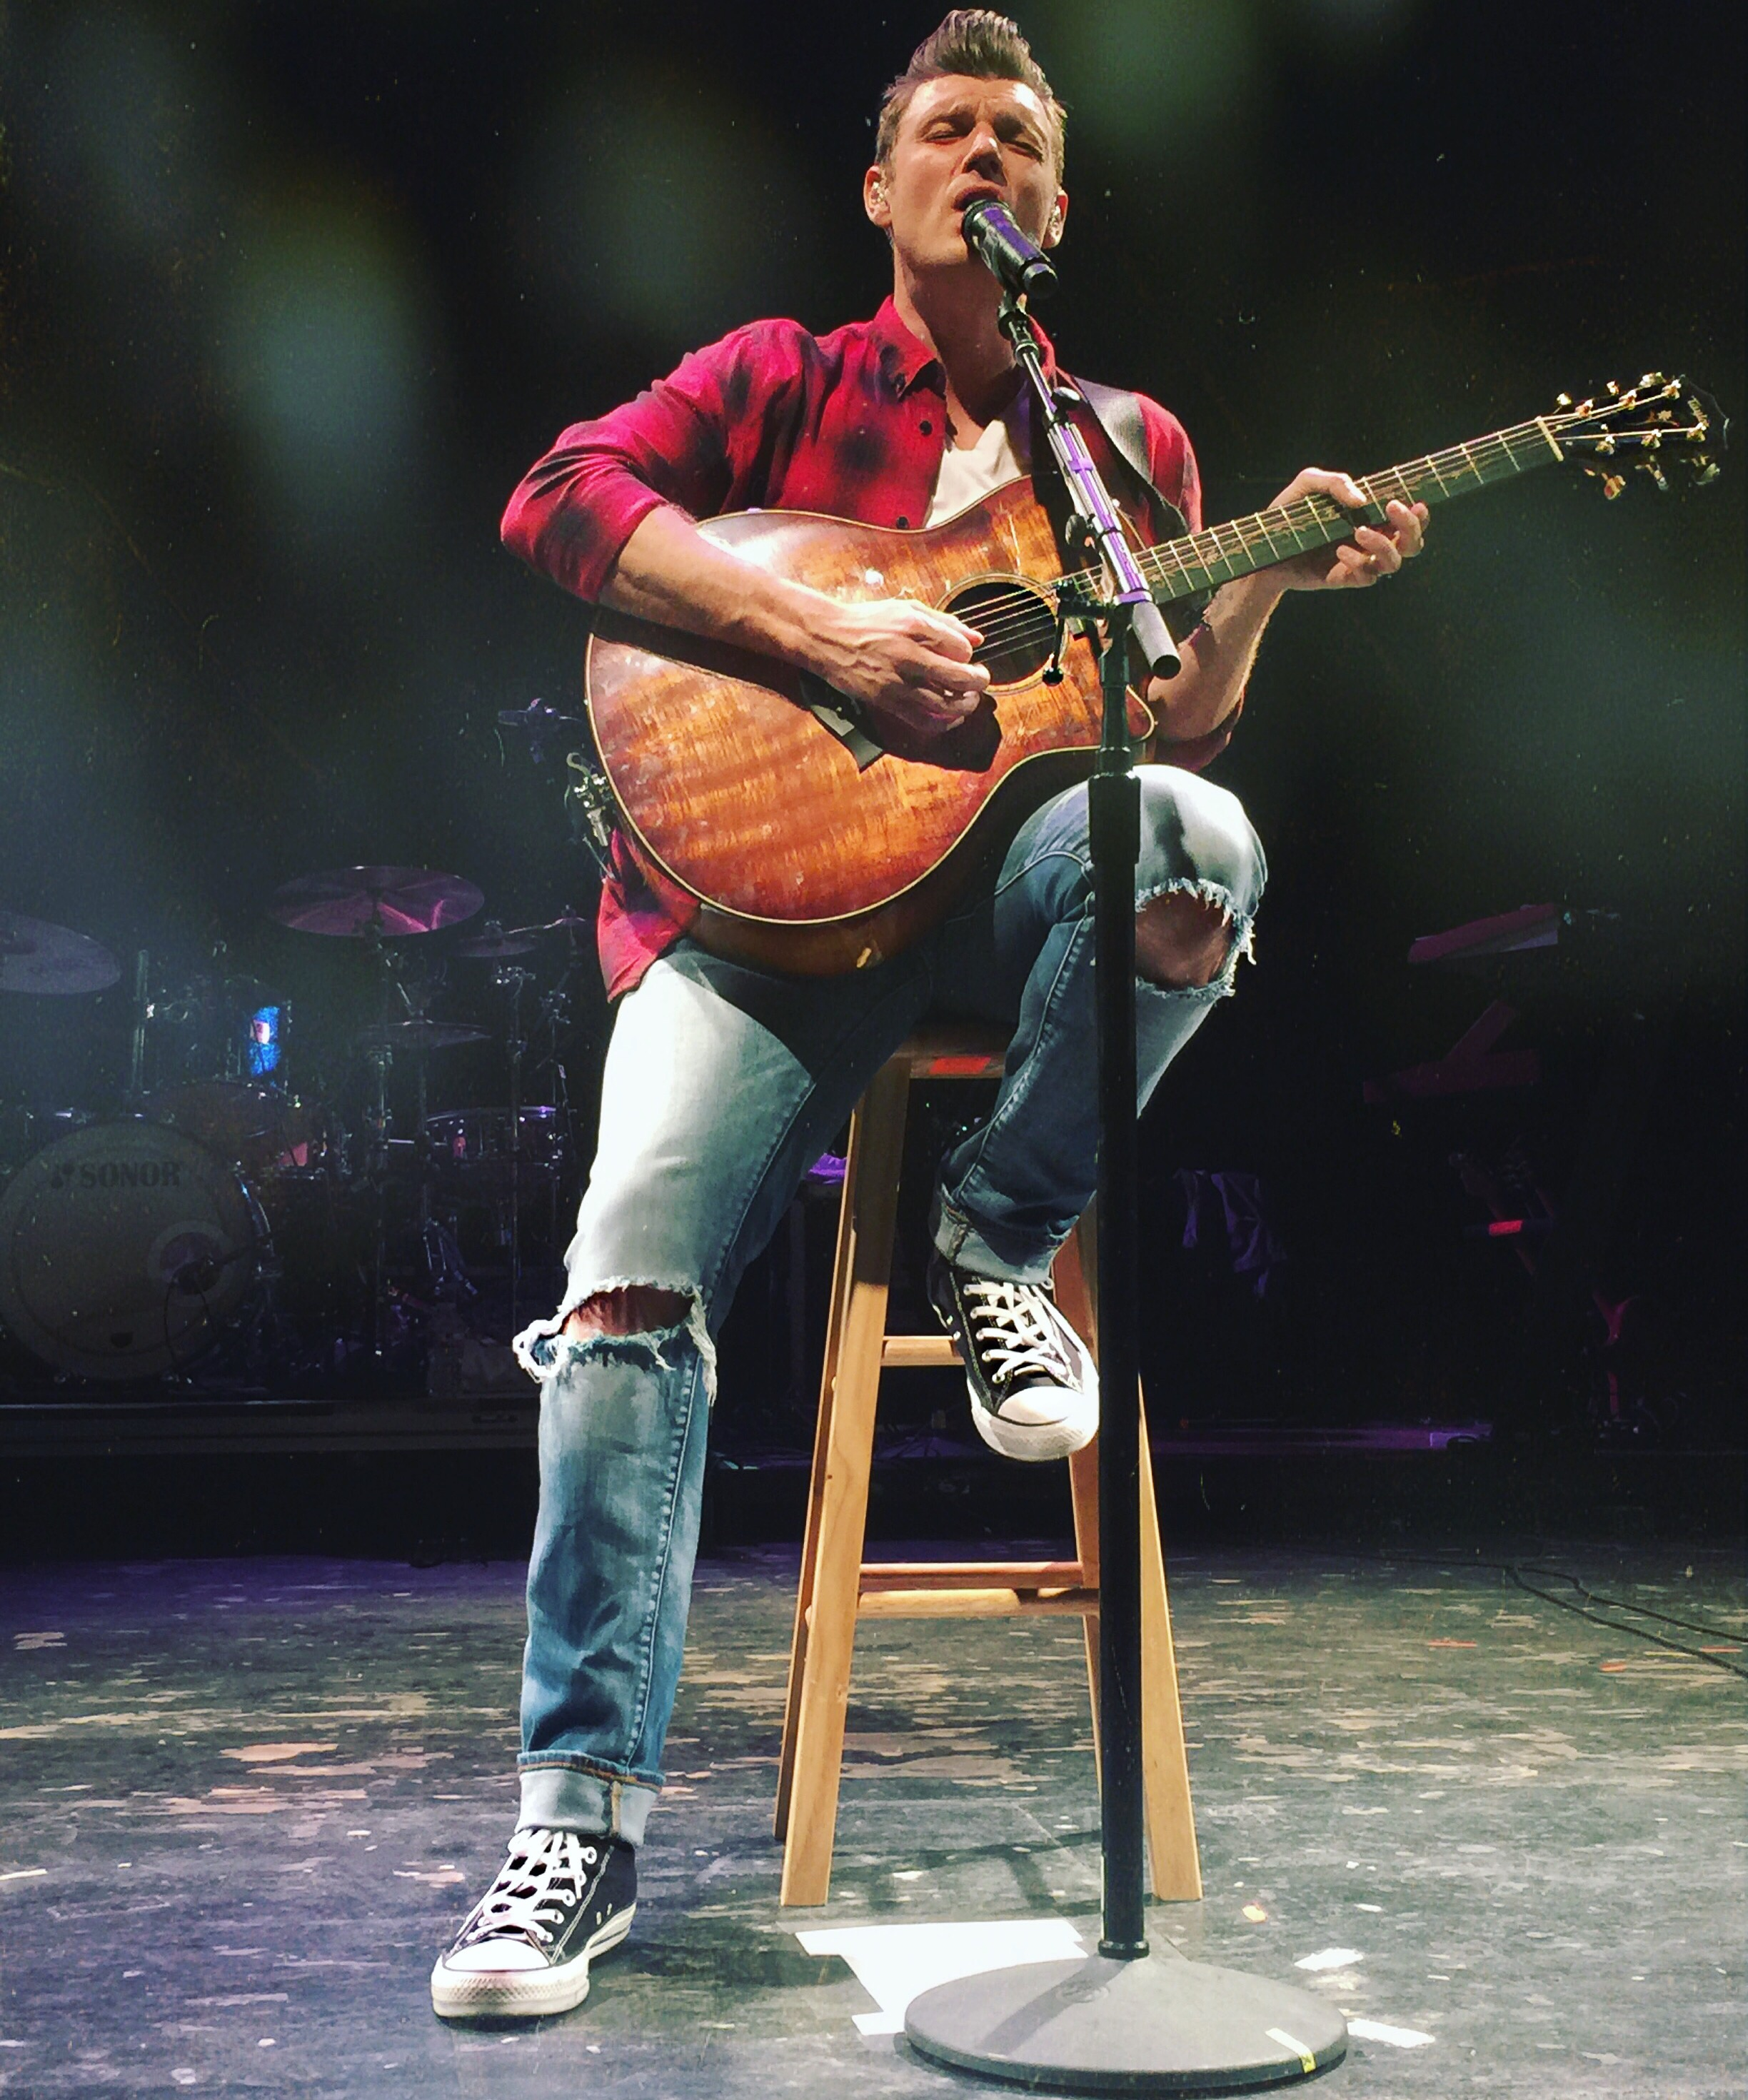 If you have the opportunity to see Nick on tour, you should. It's a really fun show, filled with his solo material, Backstreet Boys classics, and throwback covers. Plus, dancing...*swoon*. It's the perfect girl's night out...or couple of nights. Ha! I am currently having withdrawals.